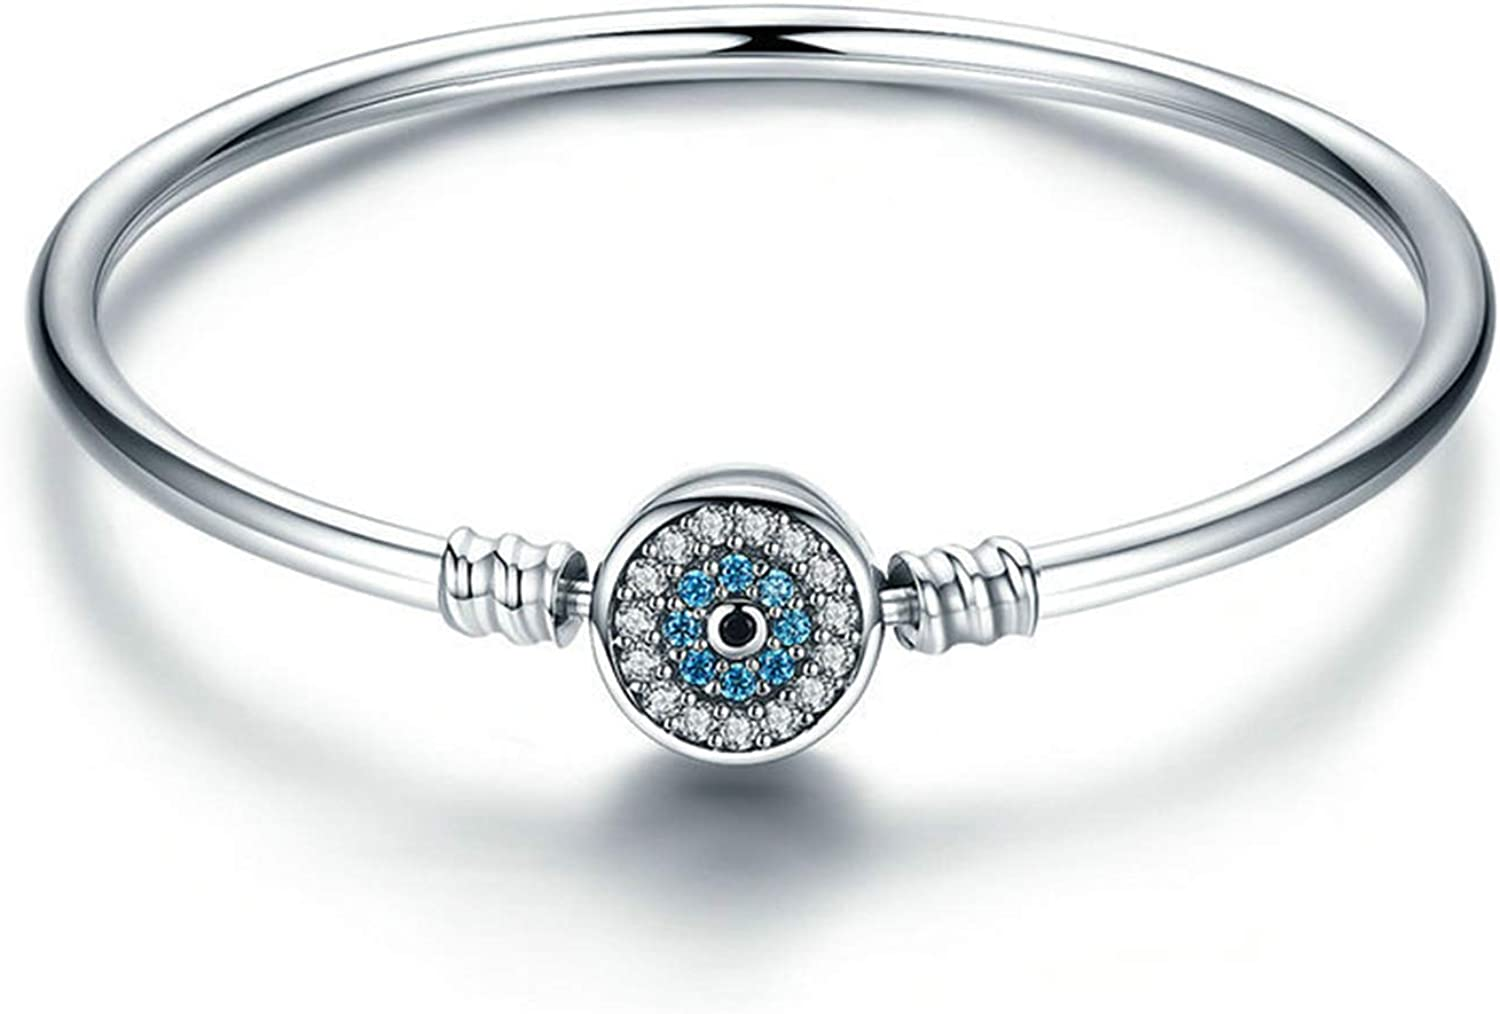 AOFFLY S925 Sterling Silver Charm Bracelets.Simple Z overseas Max 83% OFF Inlaid Blue